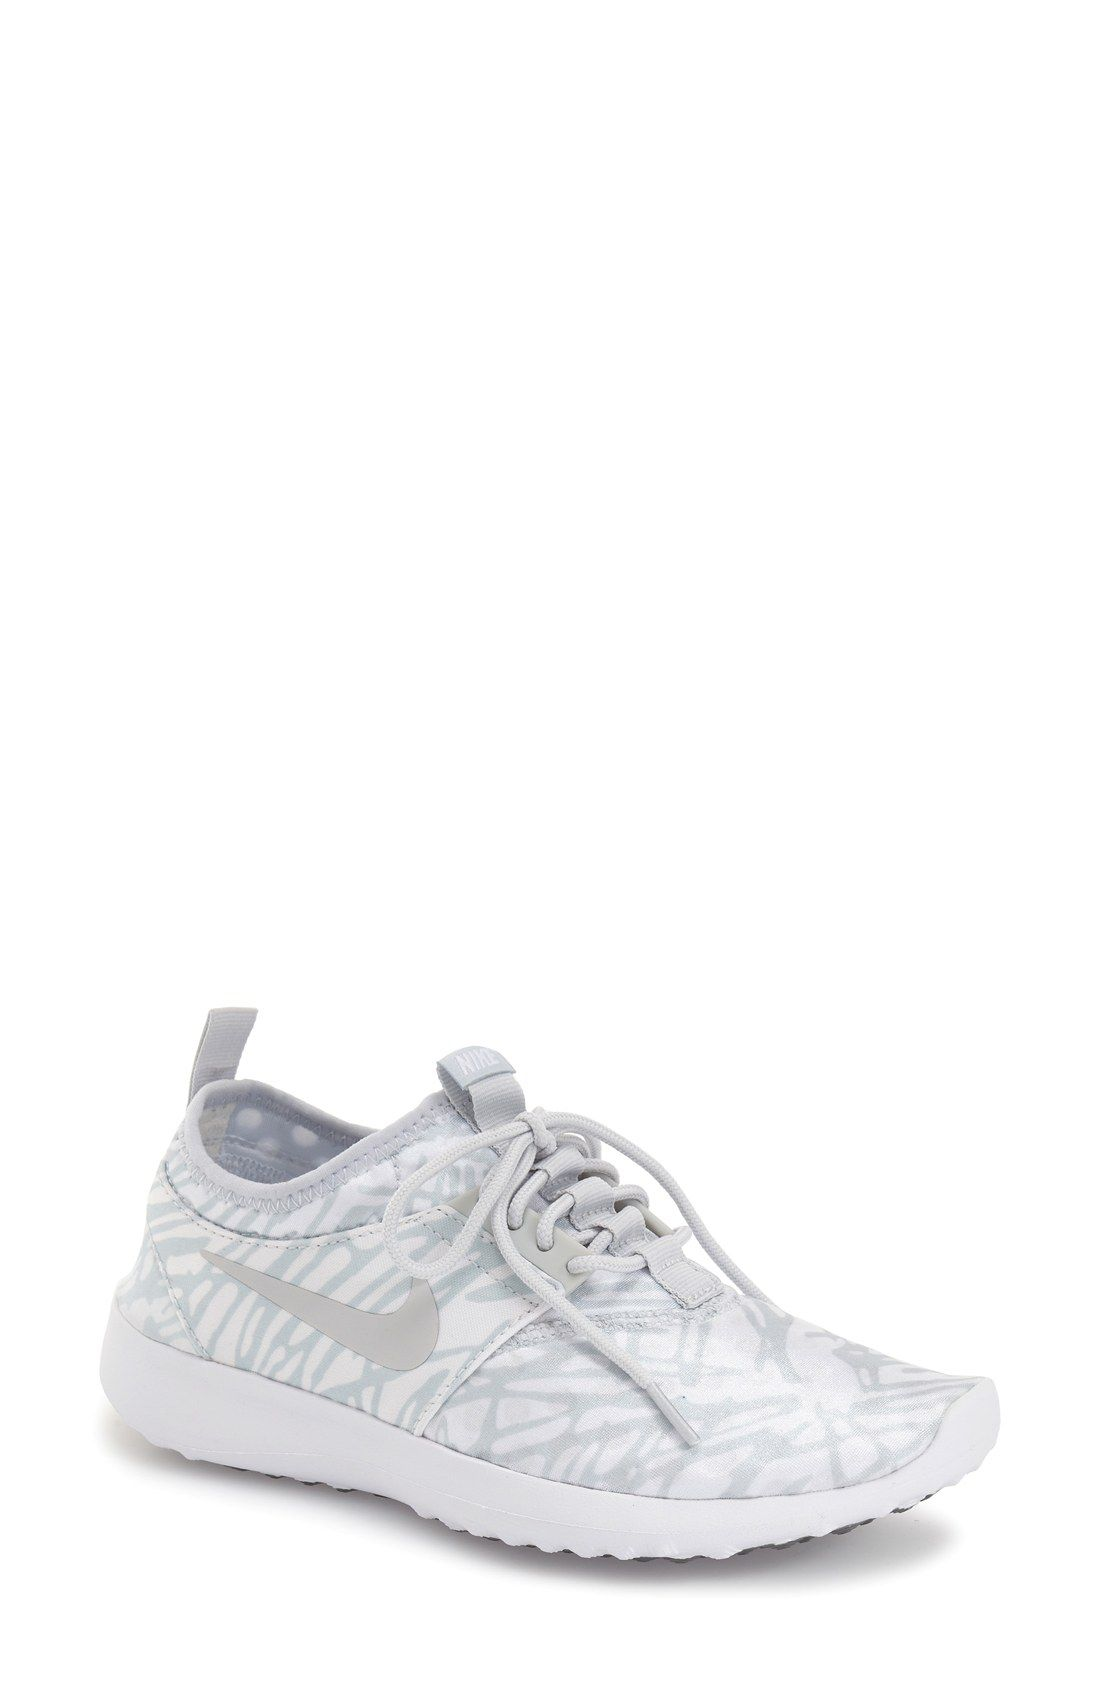 info for f048e dcfe1 Nike  Juvenate  Print Sneaker (Women) Next Shoes, Comfy Shoes, Athletic